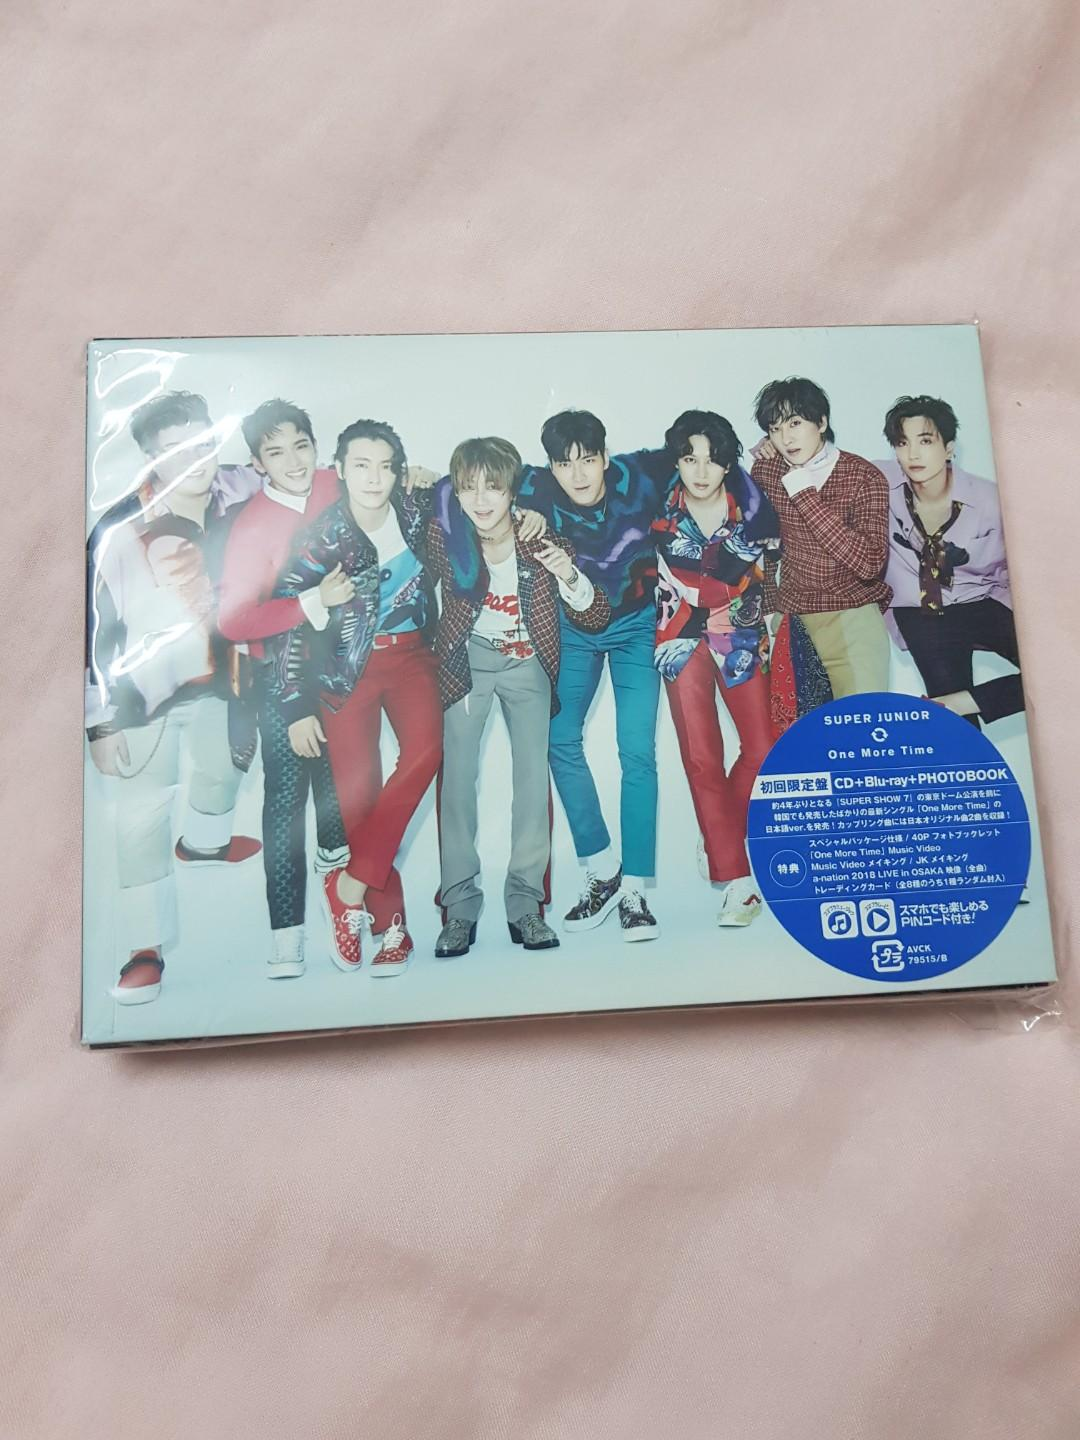 Super Junior - ONE MORE TIME  (CD + blu-ray + photobook + photocard +bookmark) 特典